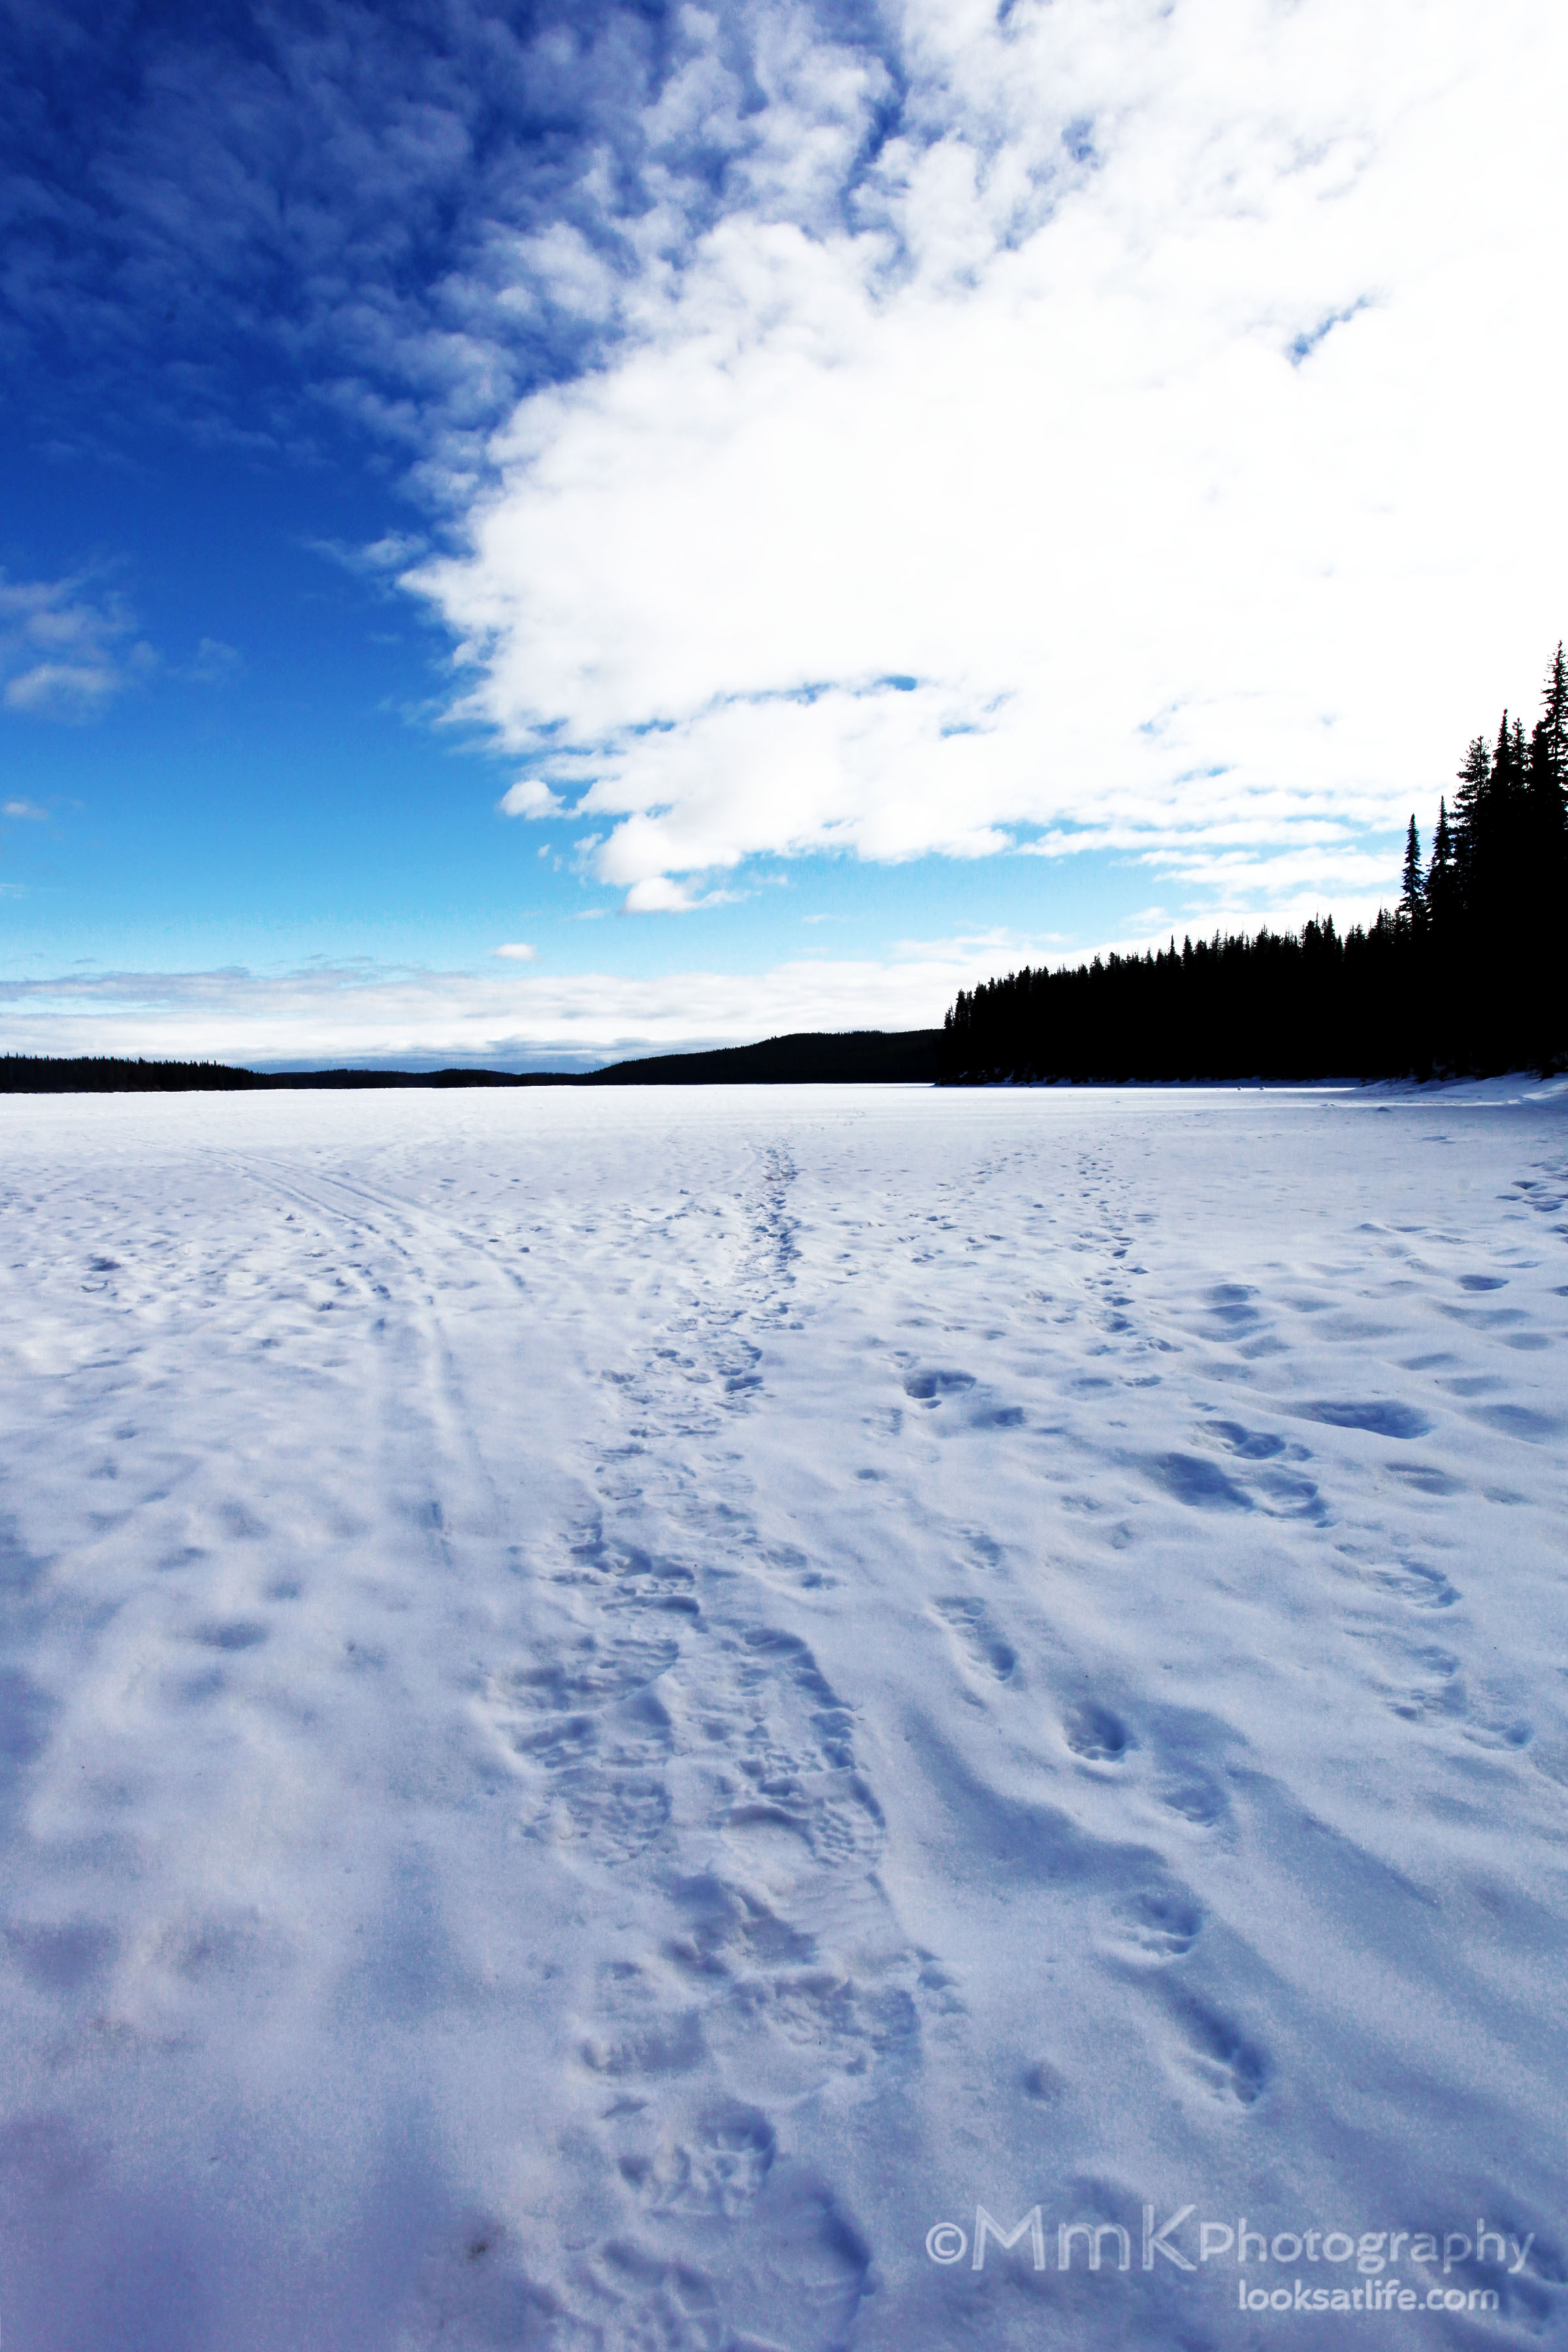 It looks like many ice fishermen, and ice fisher-dogs, havegone out on this lake.